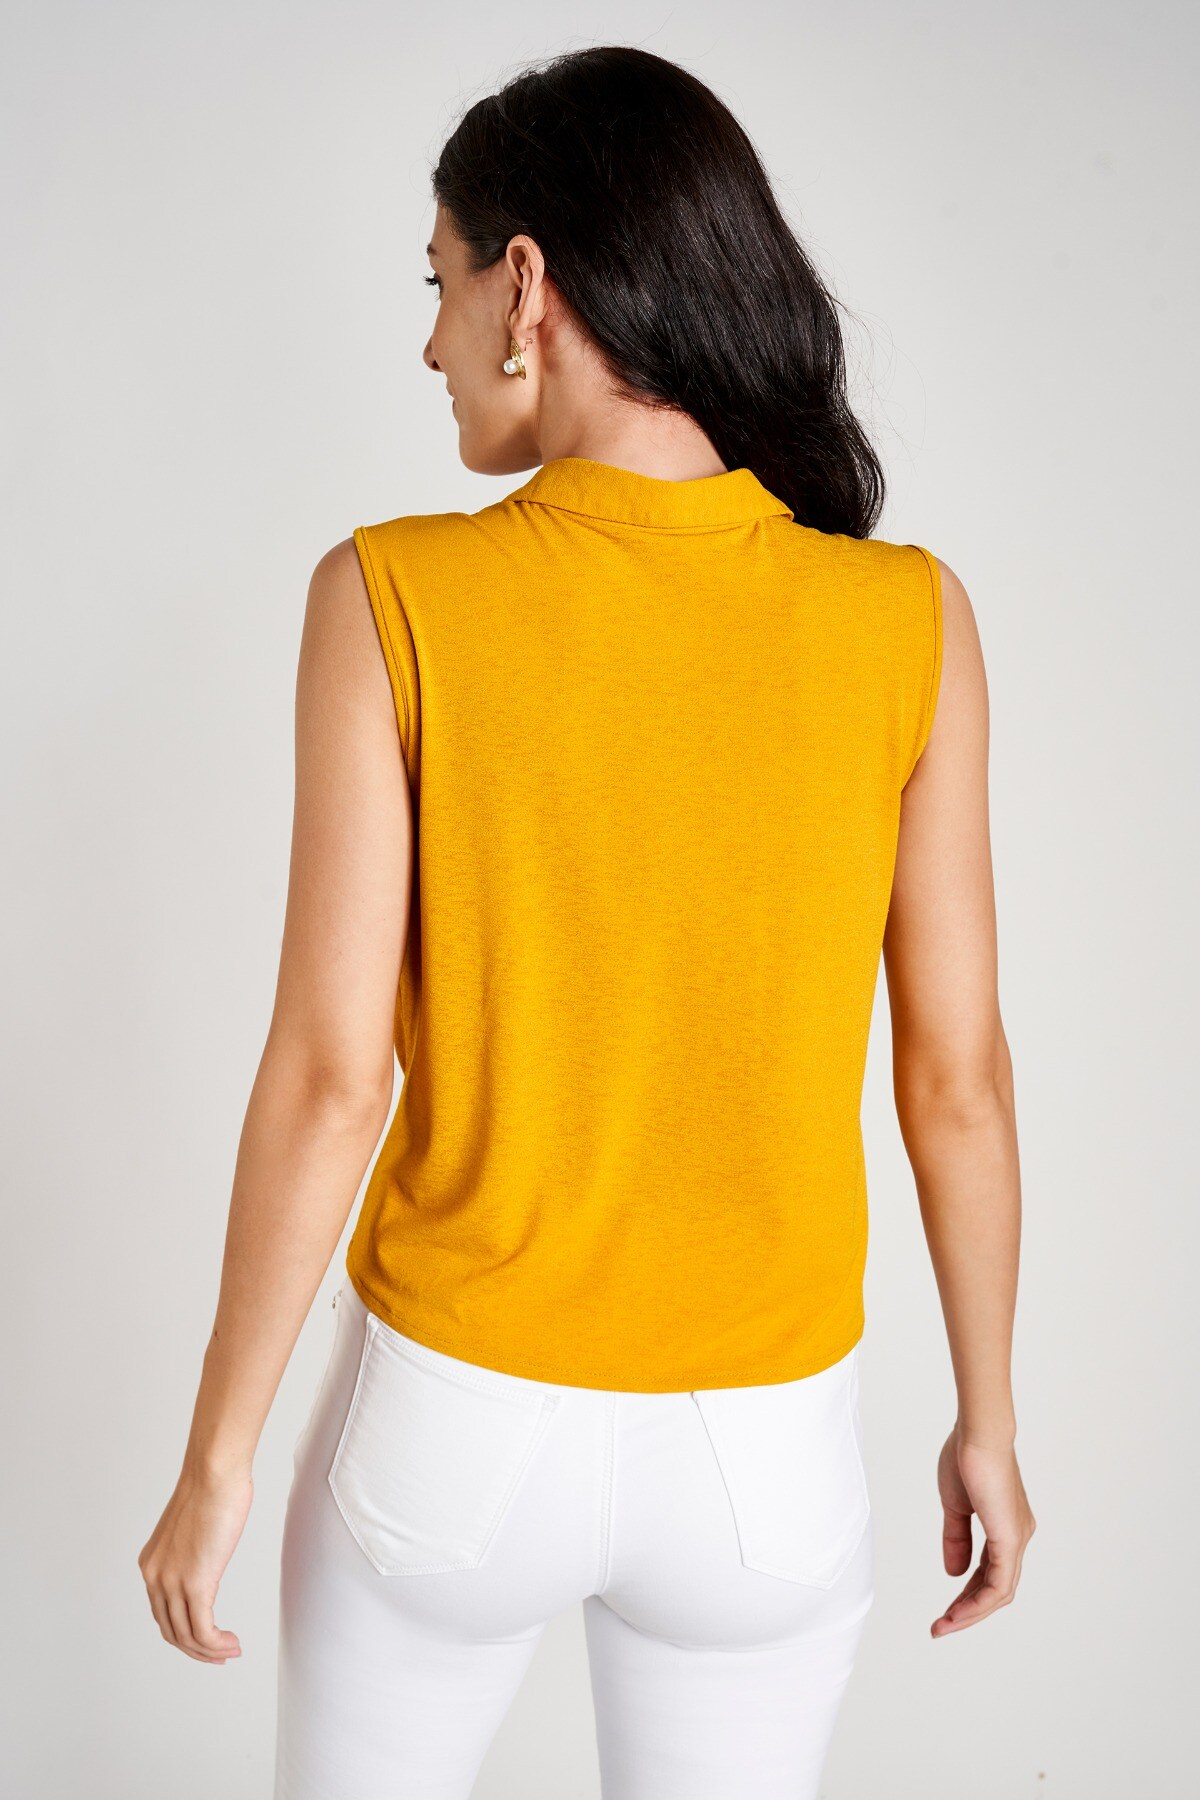 AND | Ochre Shirt Collar Fit and Flare Sleeveless Top